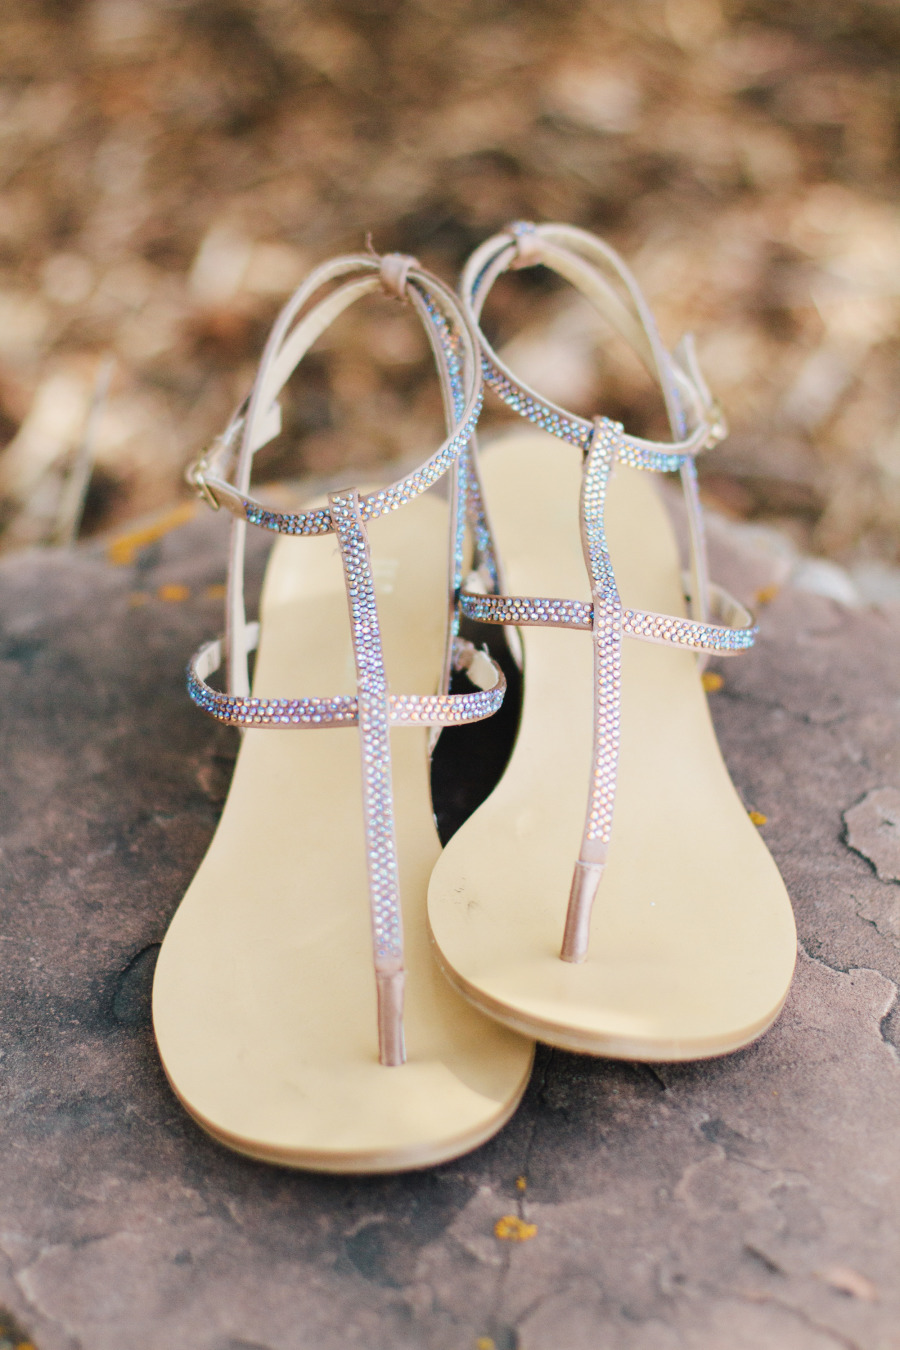 Nontraditional sandals